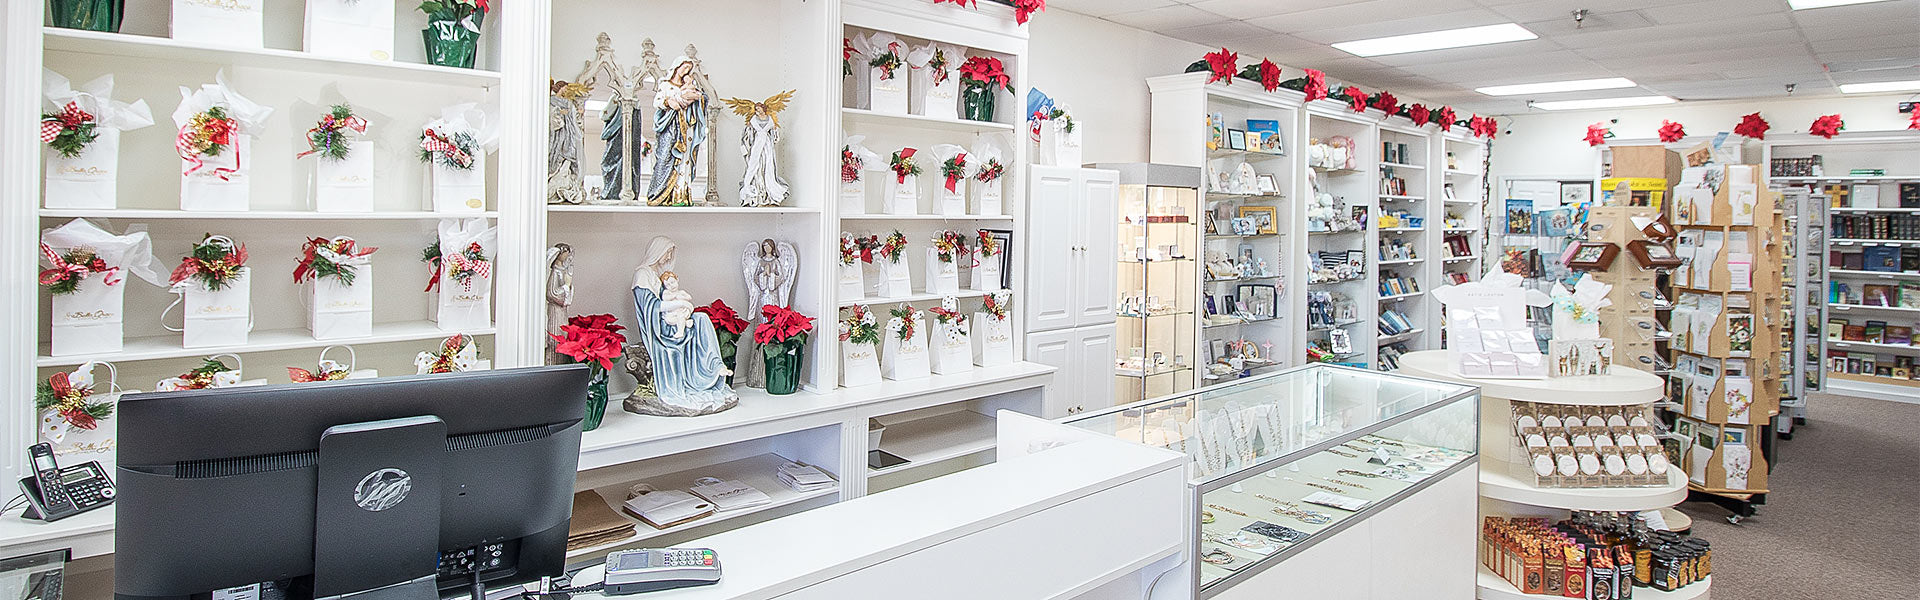 Bella Grace Jewelry and Gifts store, Gulfport, Mississippi